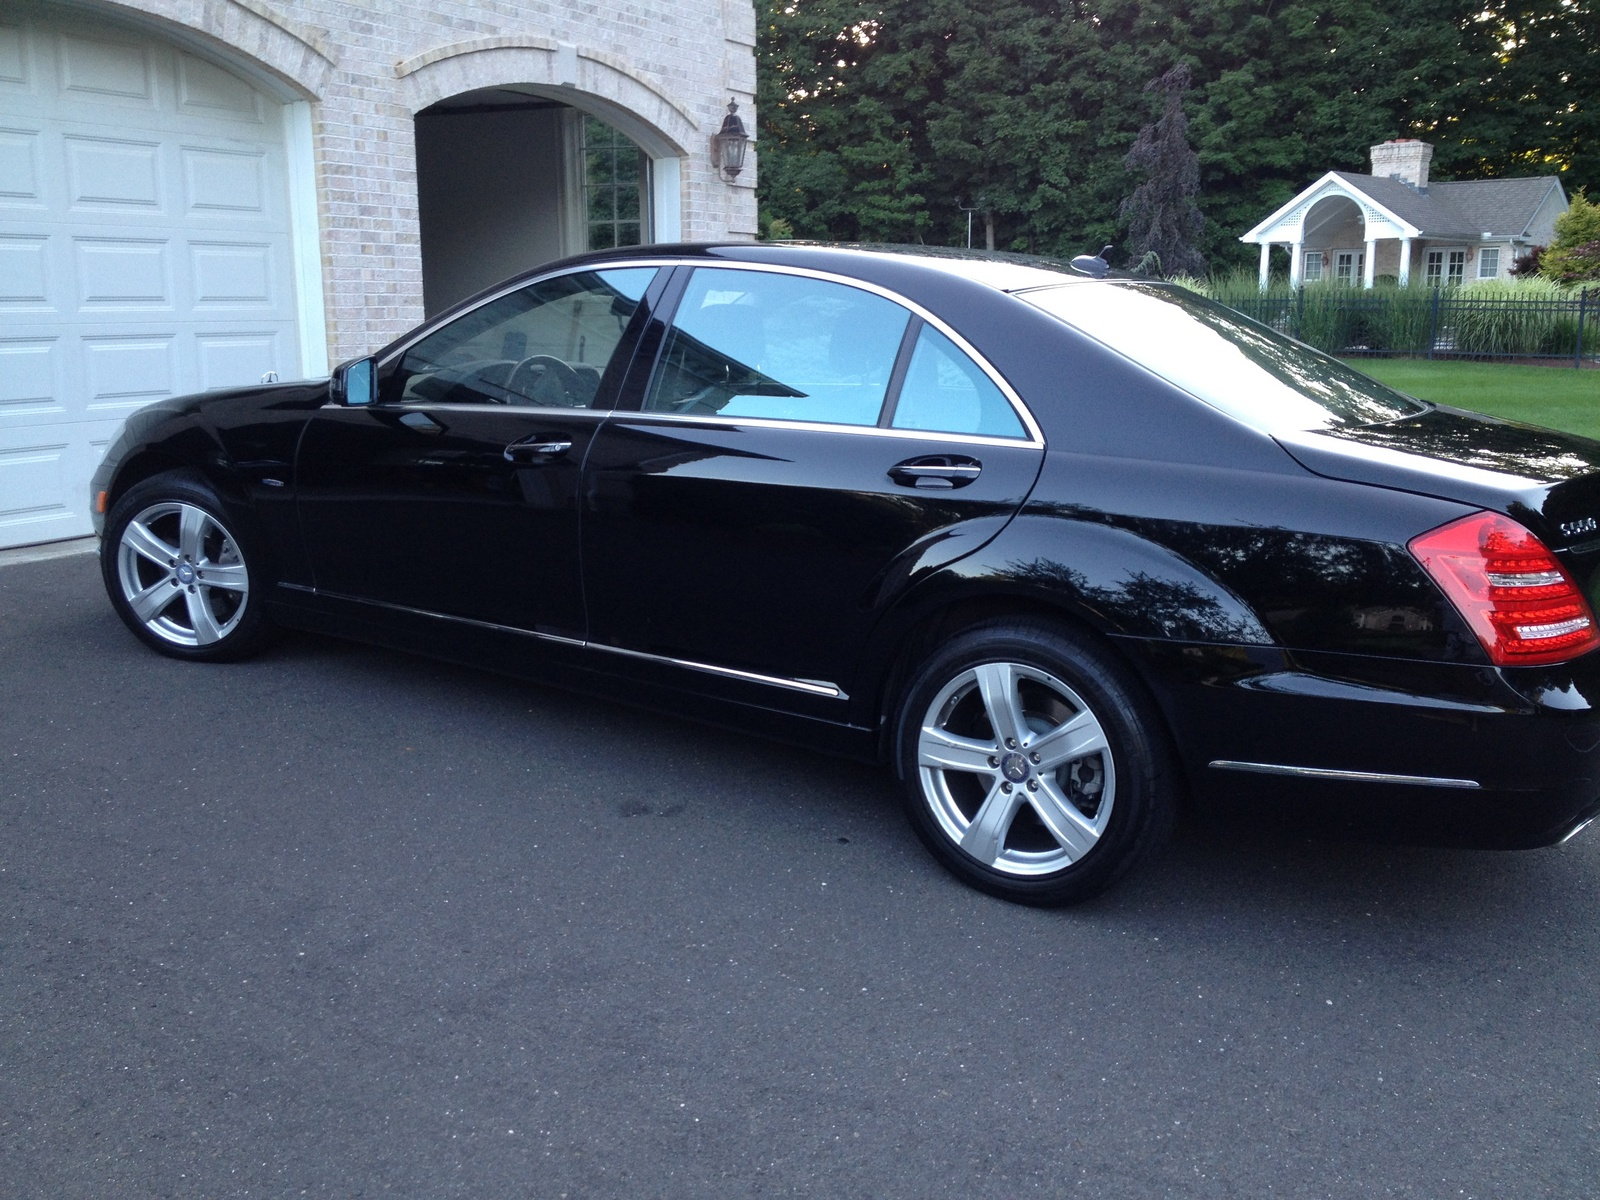 2012 mercedes benz s class pictures cargurus for 2009 mercedes benz s550 price